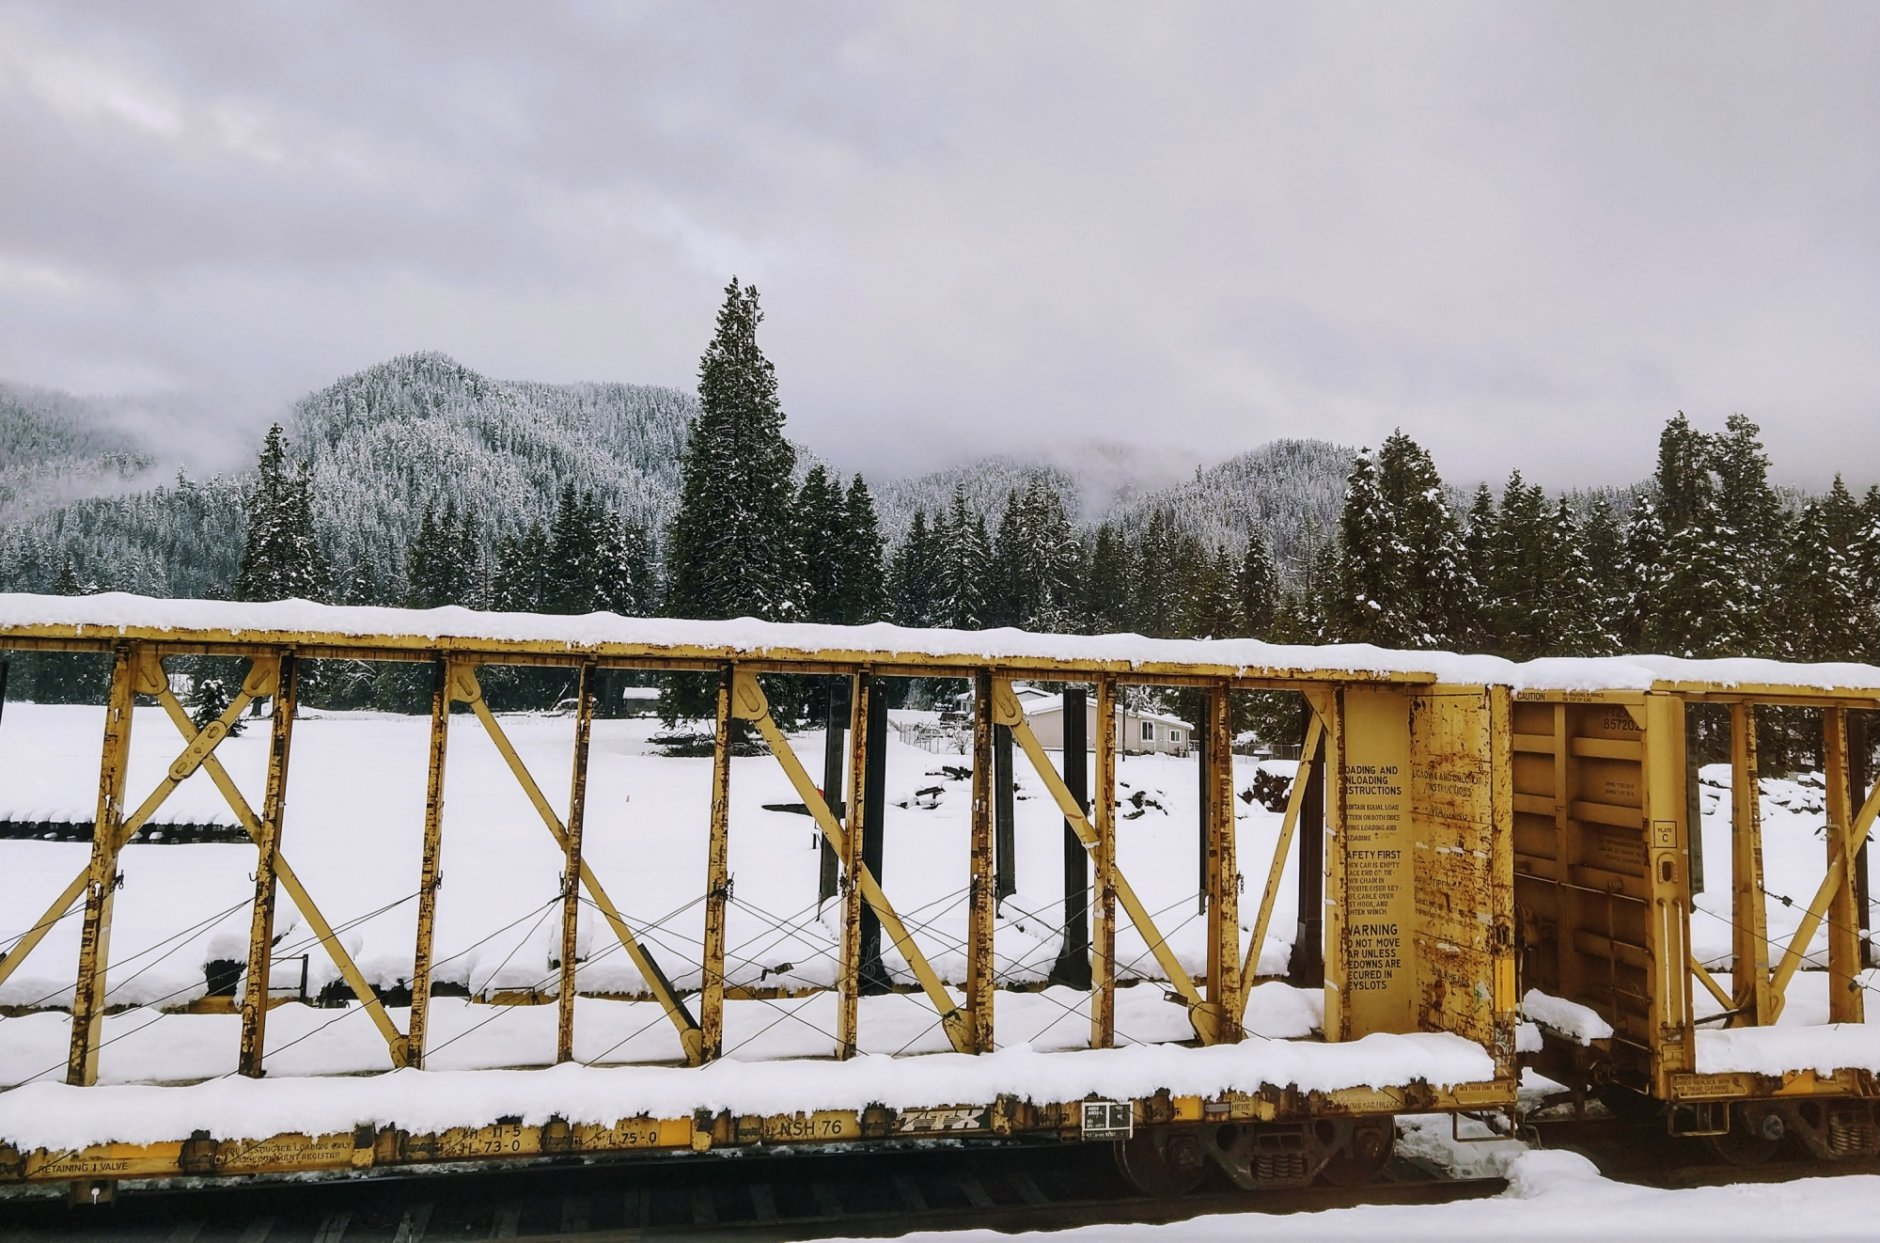 In this photo taken Monday, Feb. 25, 2019, provided by Tracy Rhodes, is her view out the window from inside an Amtrak train that was stuck for 36 hours in Oakridge, Ore.  The train traveling from Seattle to Los Angeles with 183 passengers got stranded in the snowy mountains of Oregon for at least 36 hours, putting a strain on passengers as food, patience and even diapers ran short.  (Tracy Rhodes via AP)